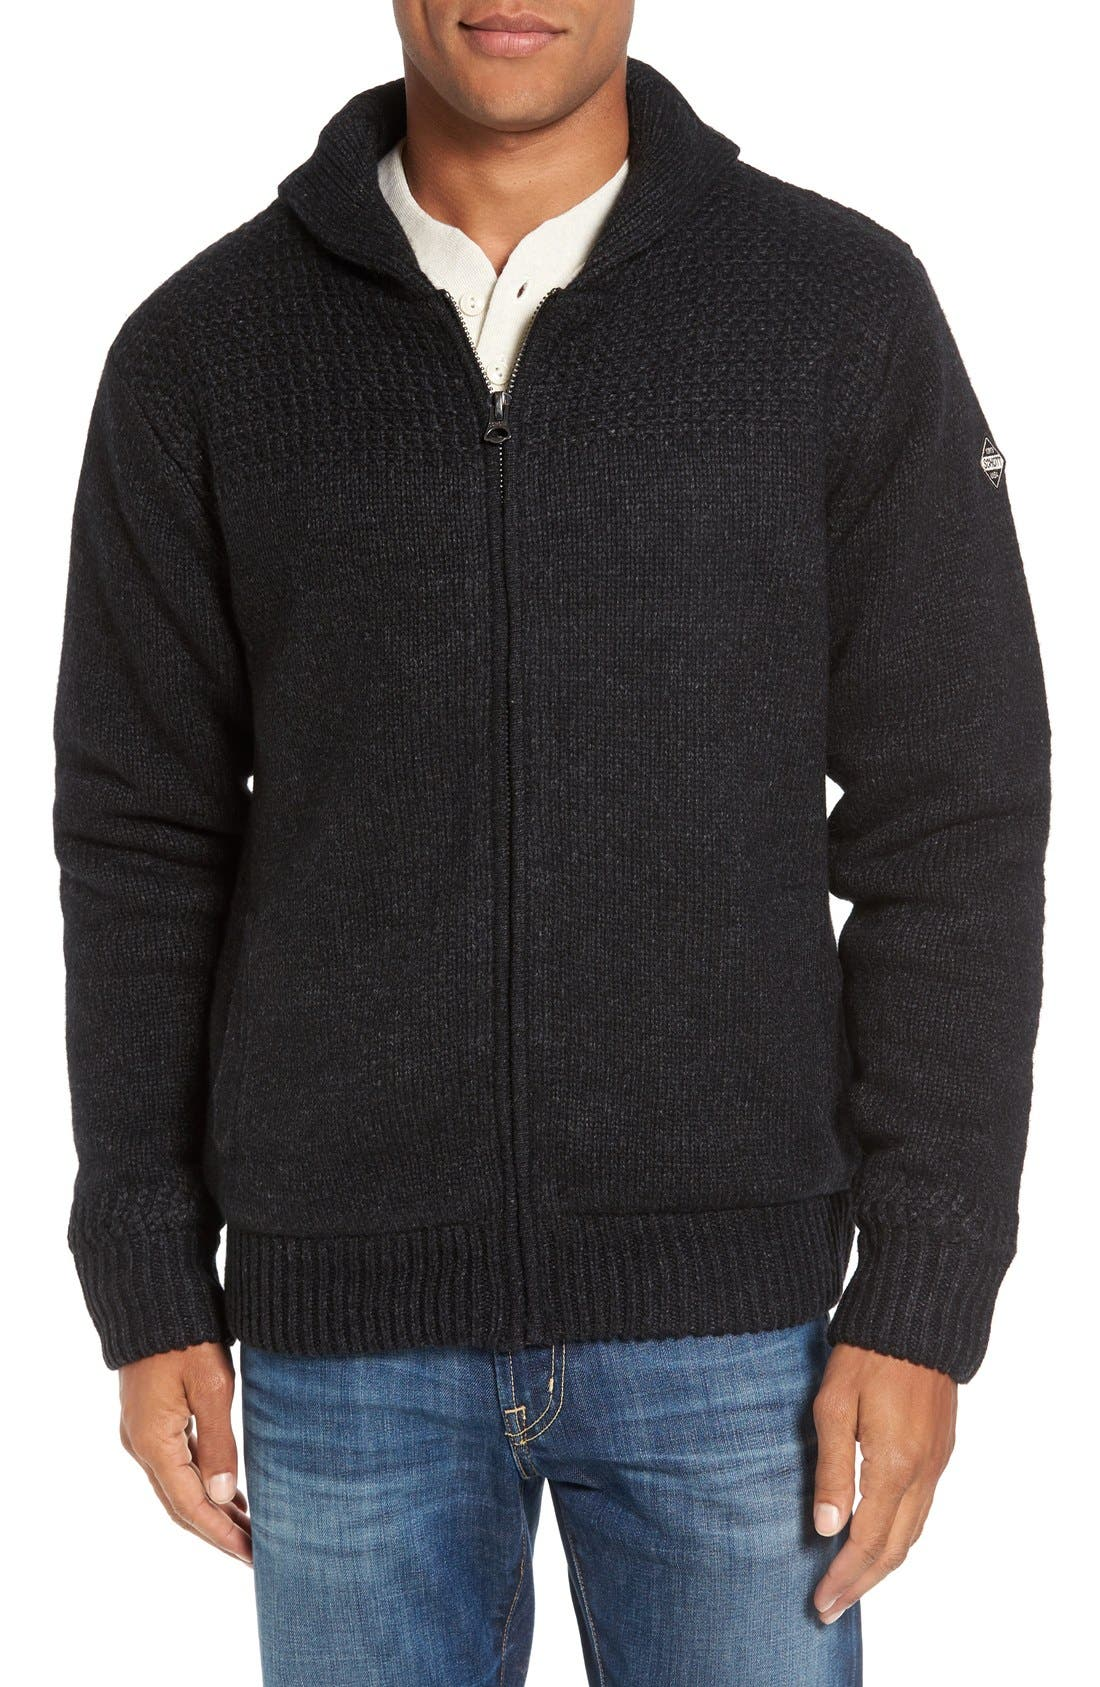 Lined Wool Zip Sweater,                             Main thumbnail 1, color,                             BLACK